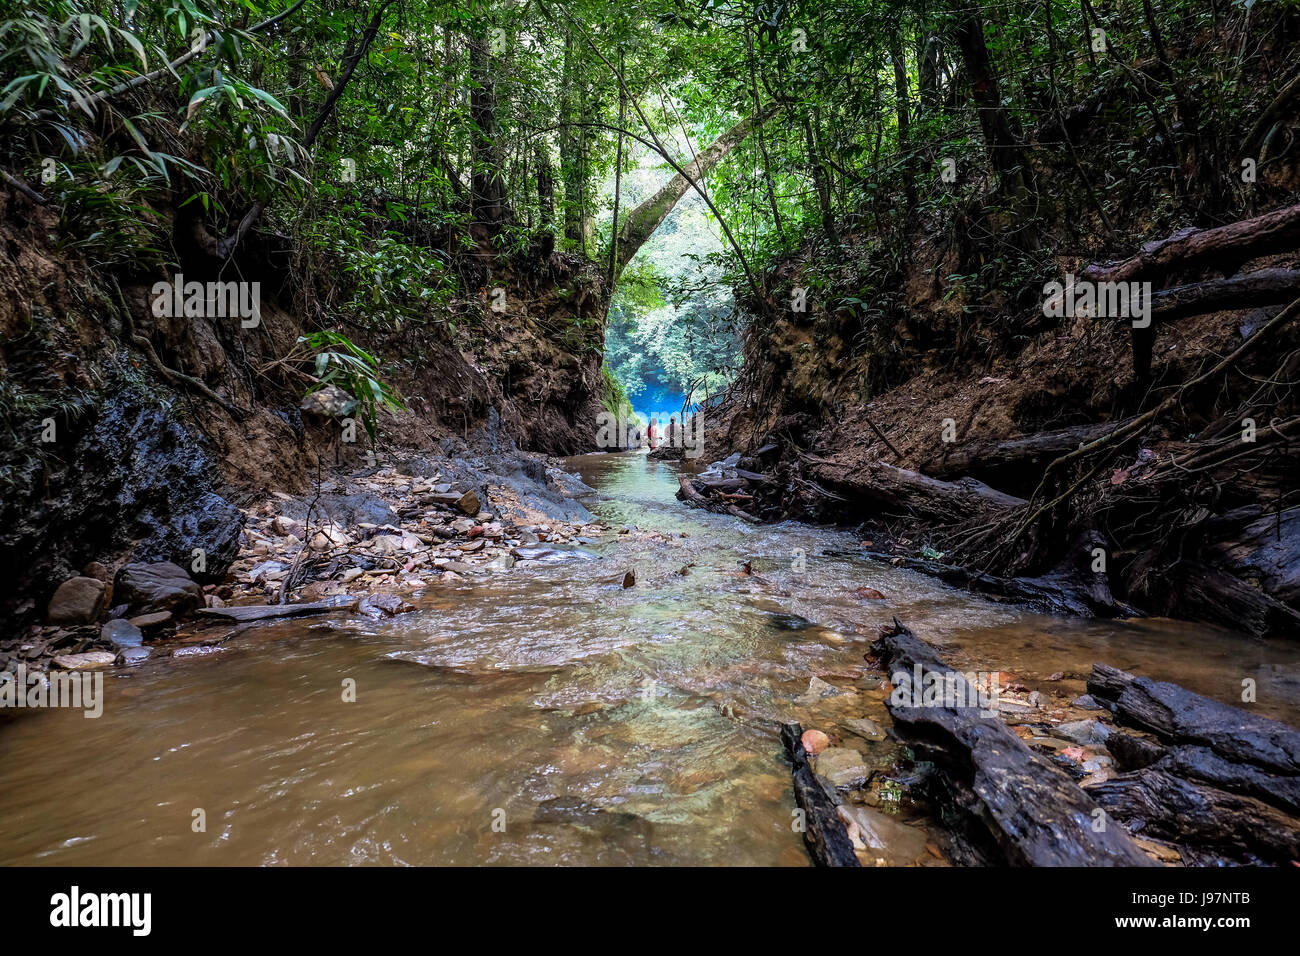 Isolated trail in the Heart of Borneo in West Kalimantan, Indonesia. - Stock Image